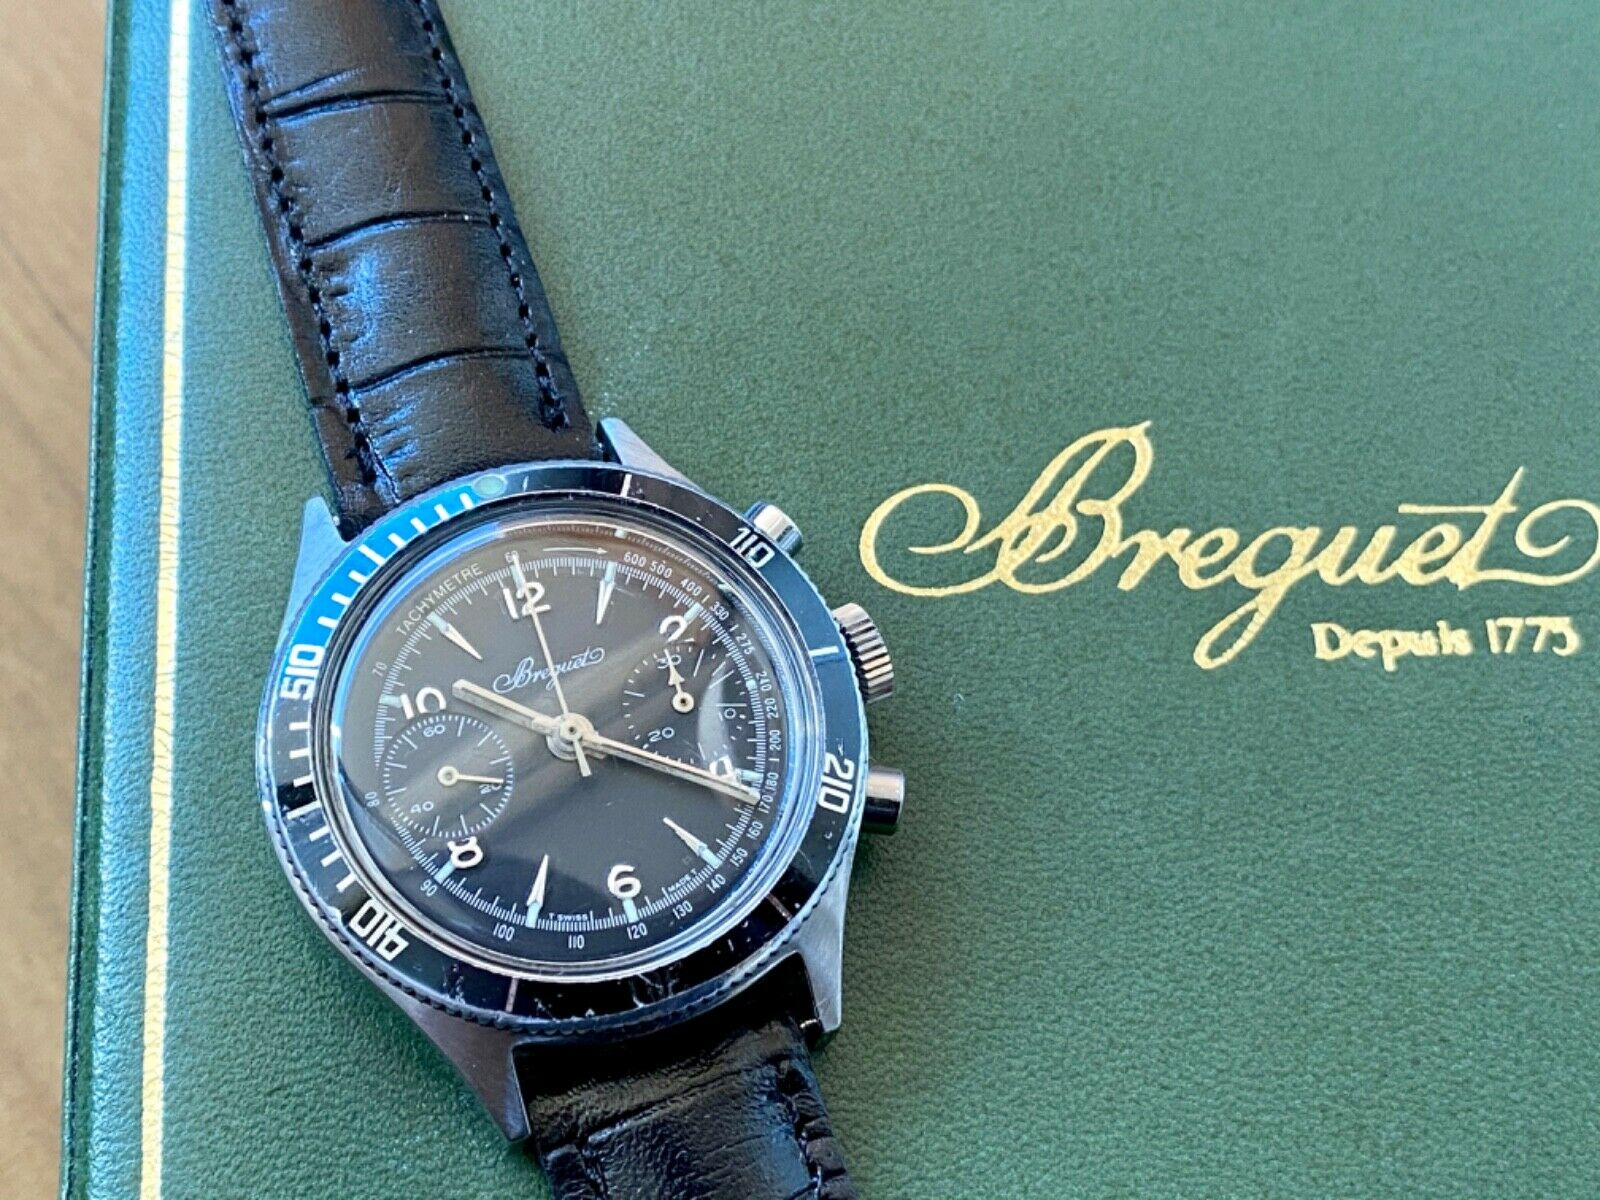 Impeccable Chronograph Breguet Type XX Men's Vintage Watch1970s UPS Shipping - watch picture 1